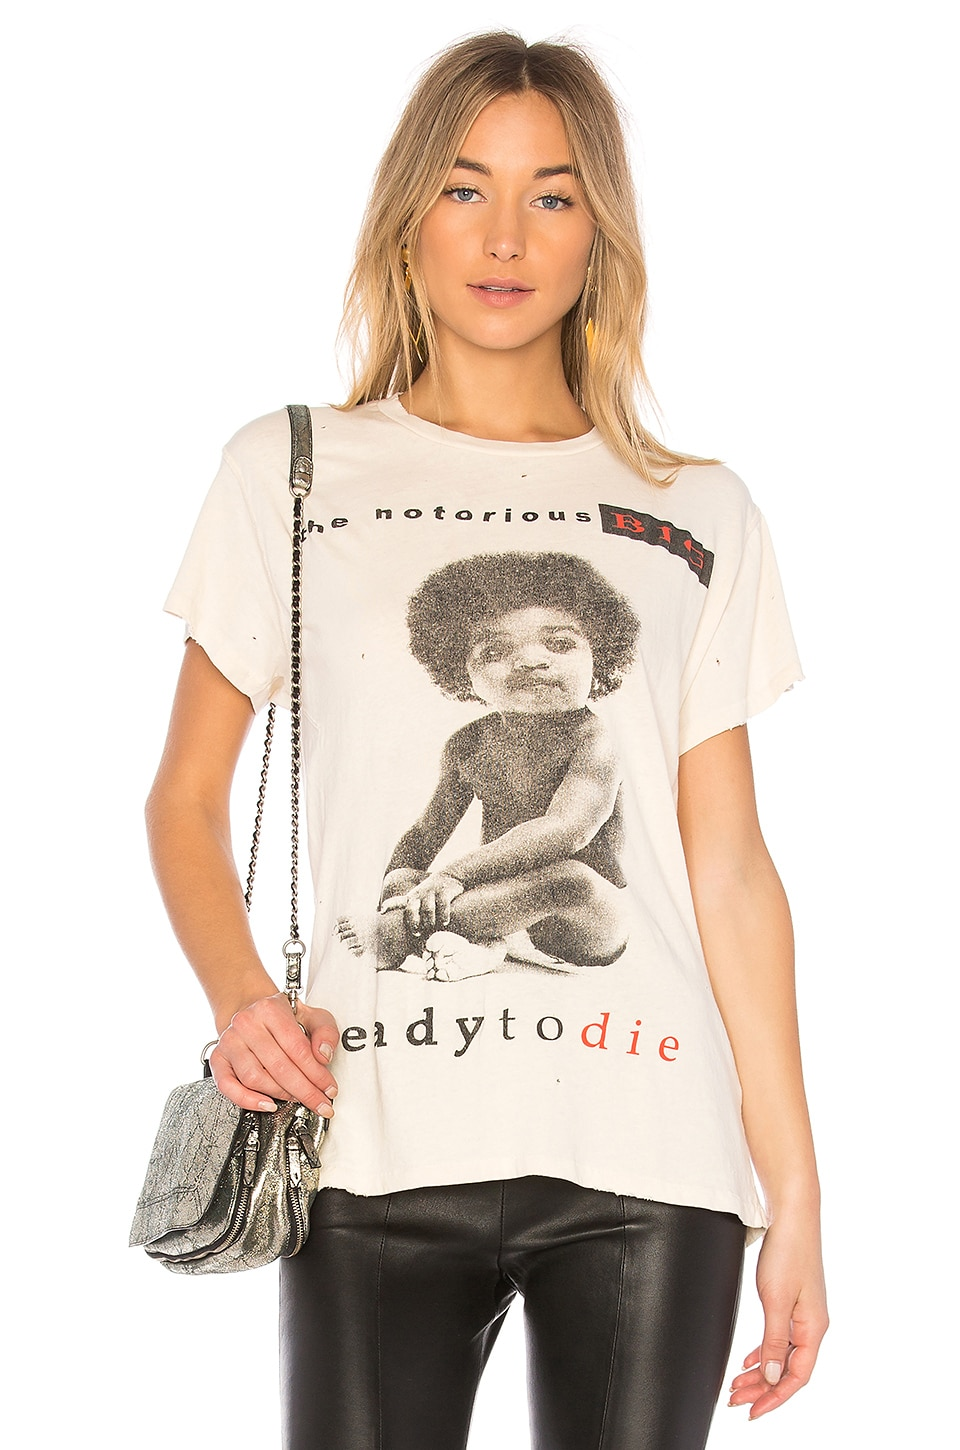 Madeworn BIG Ready To Die Tee in Dirty White